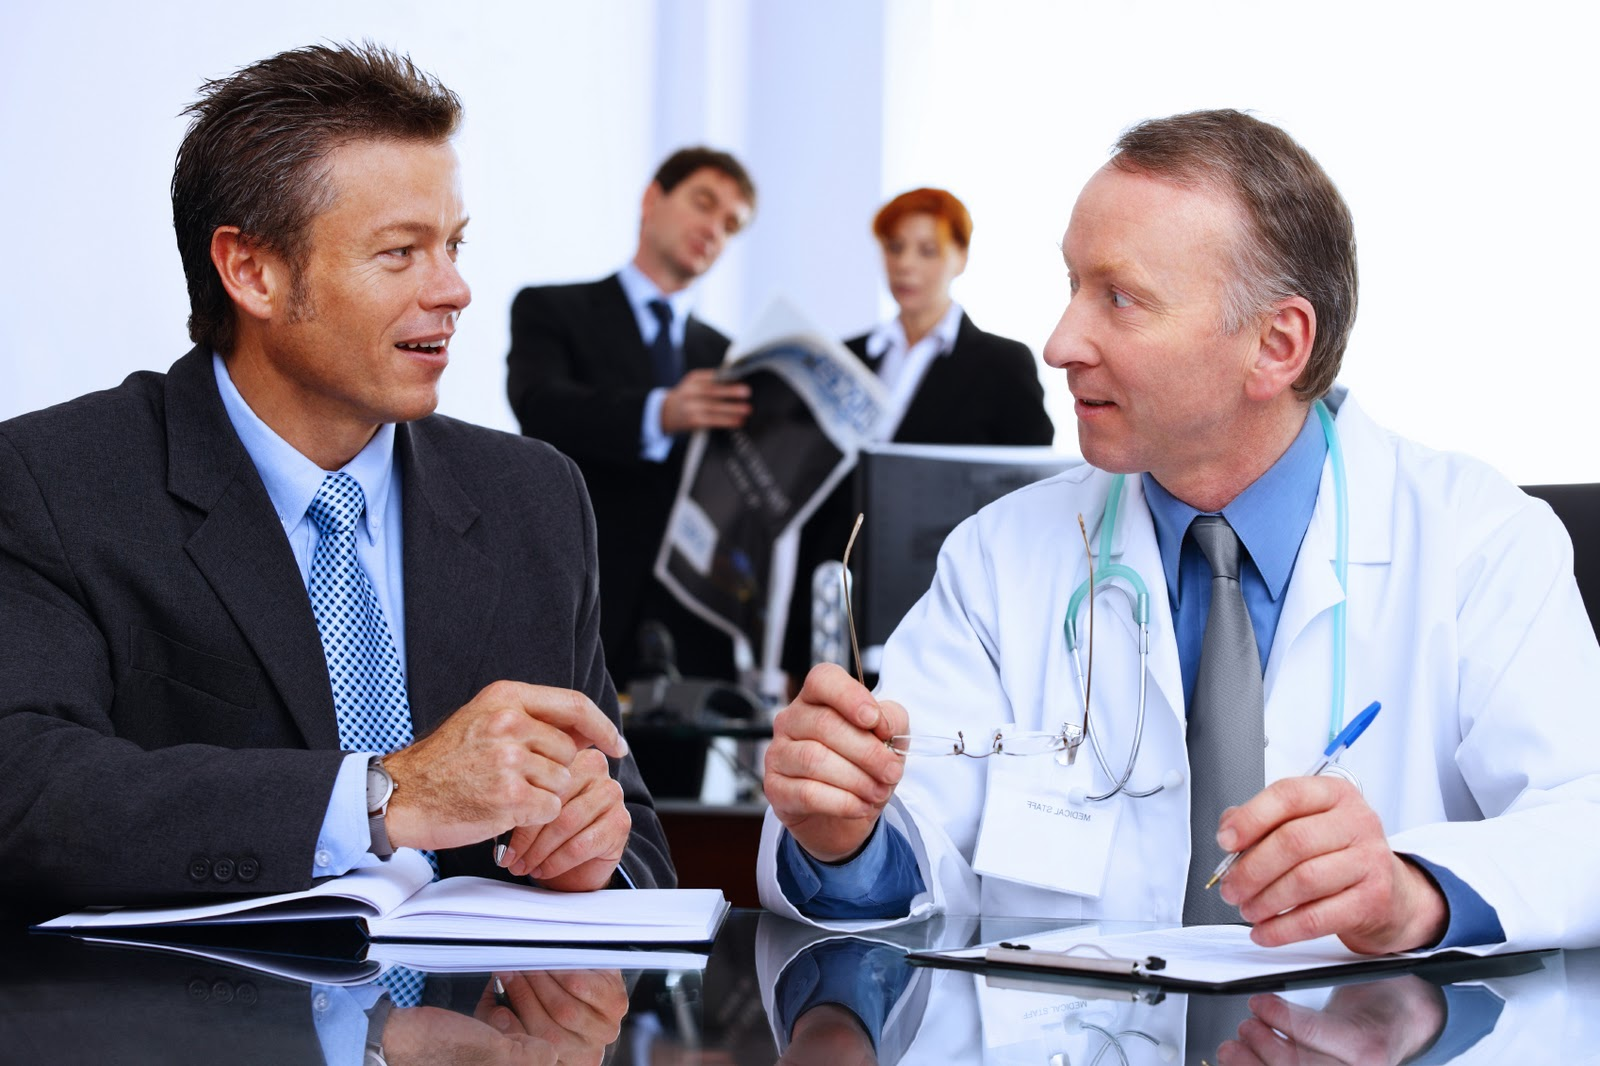 Medical Billing Provides Best Practices